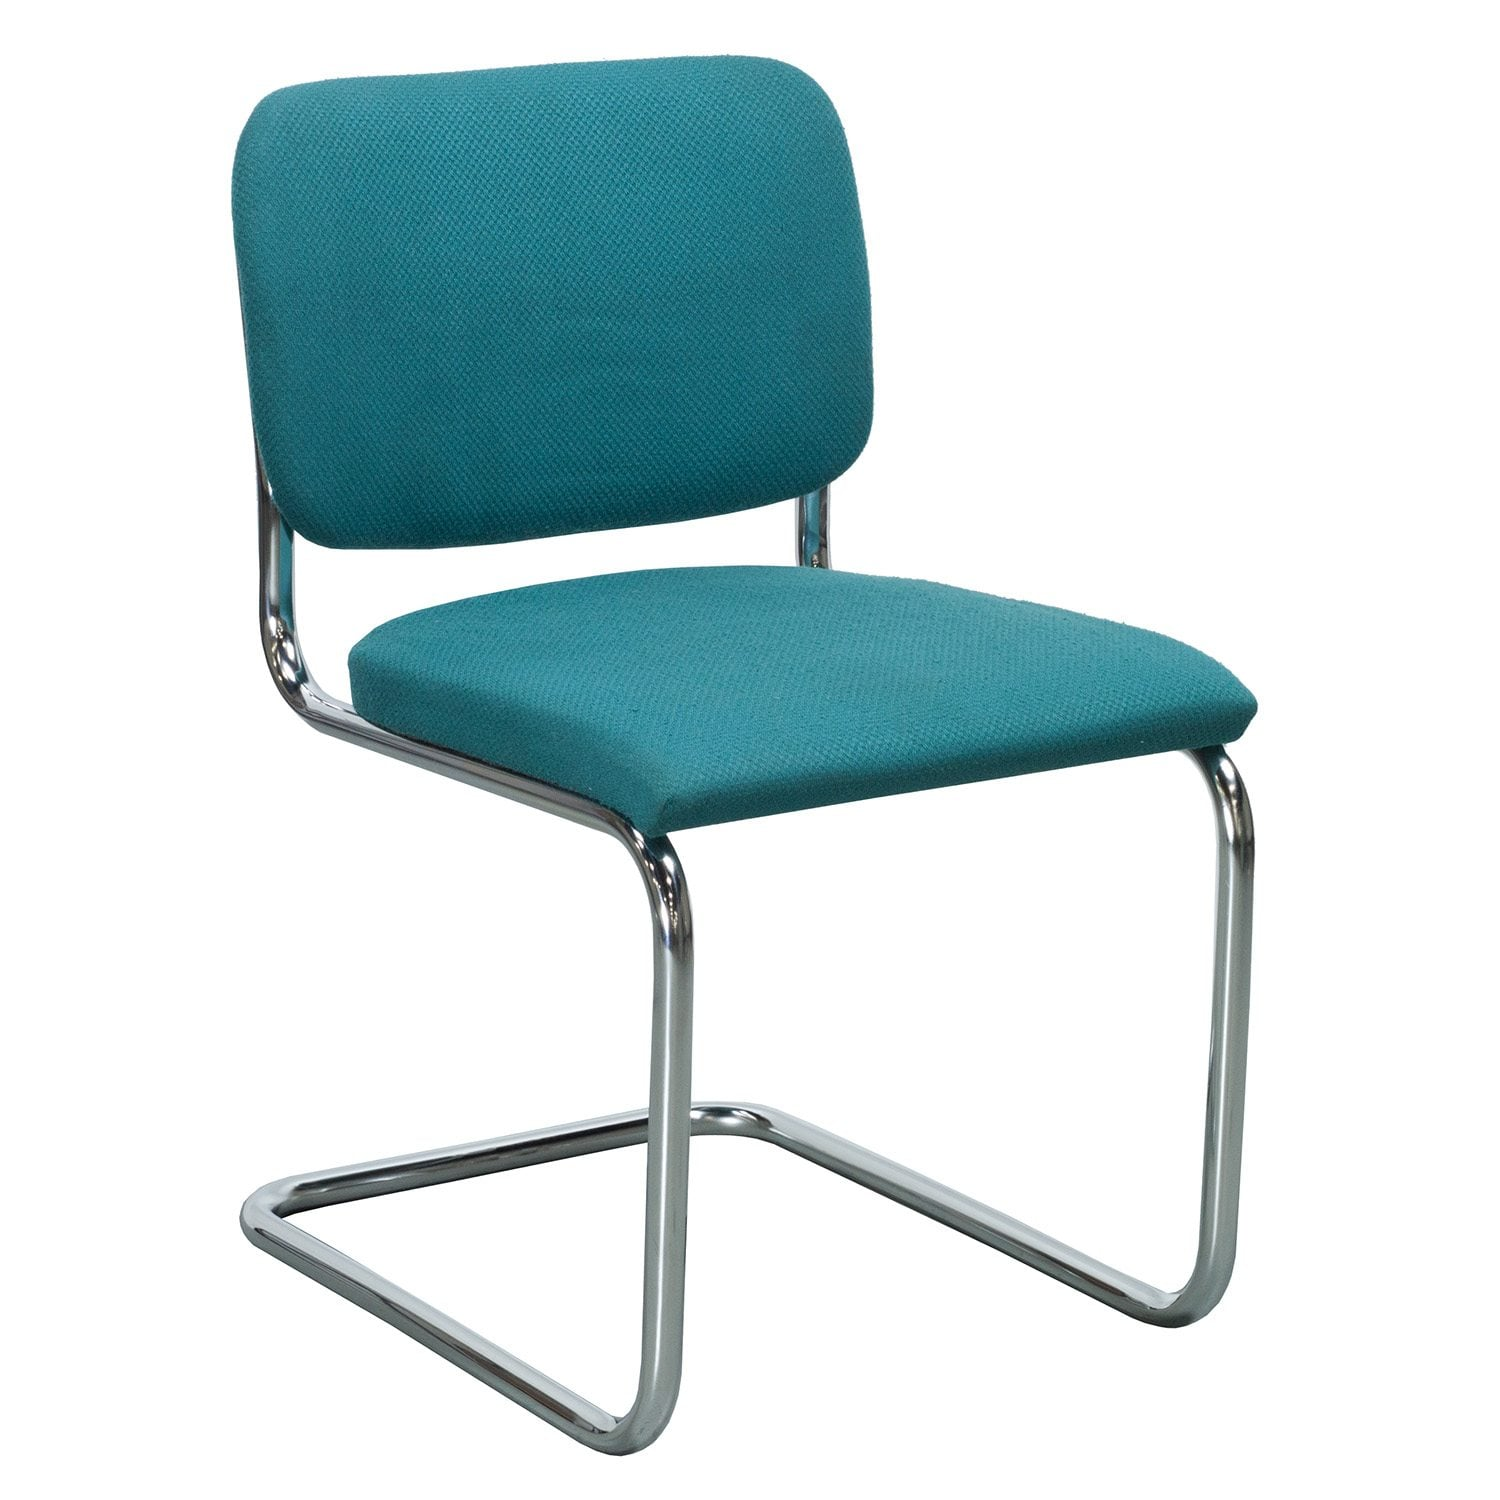 Thonet S32 Thonet S 32 Pv Used Upholstered Side Chair Aqua